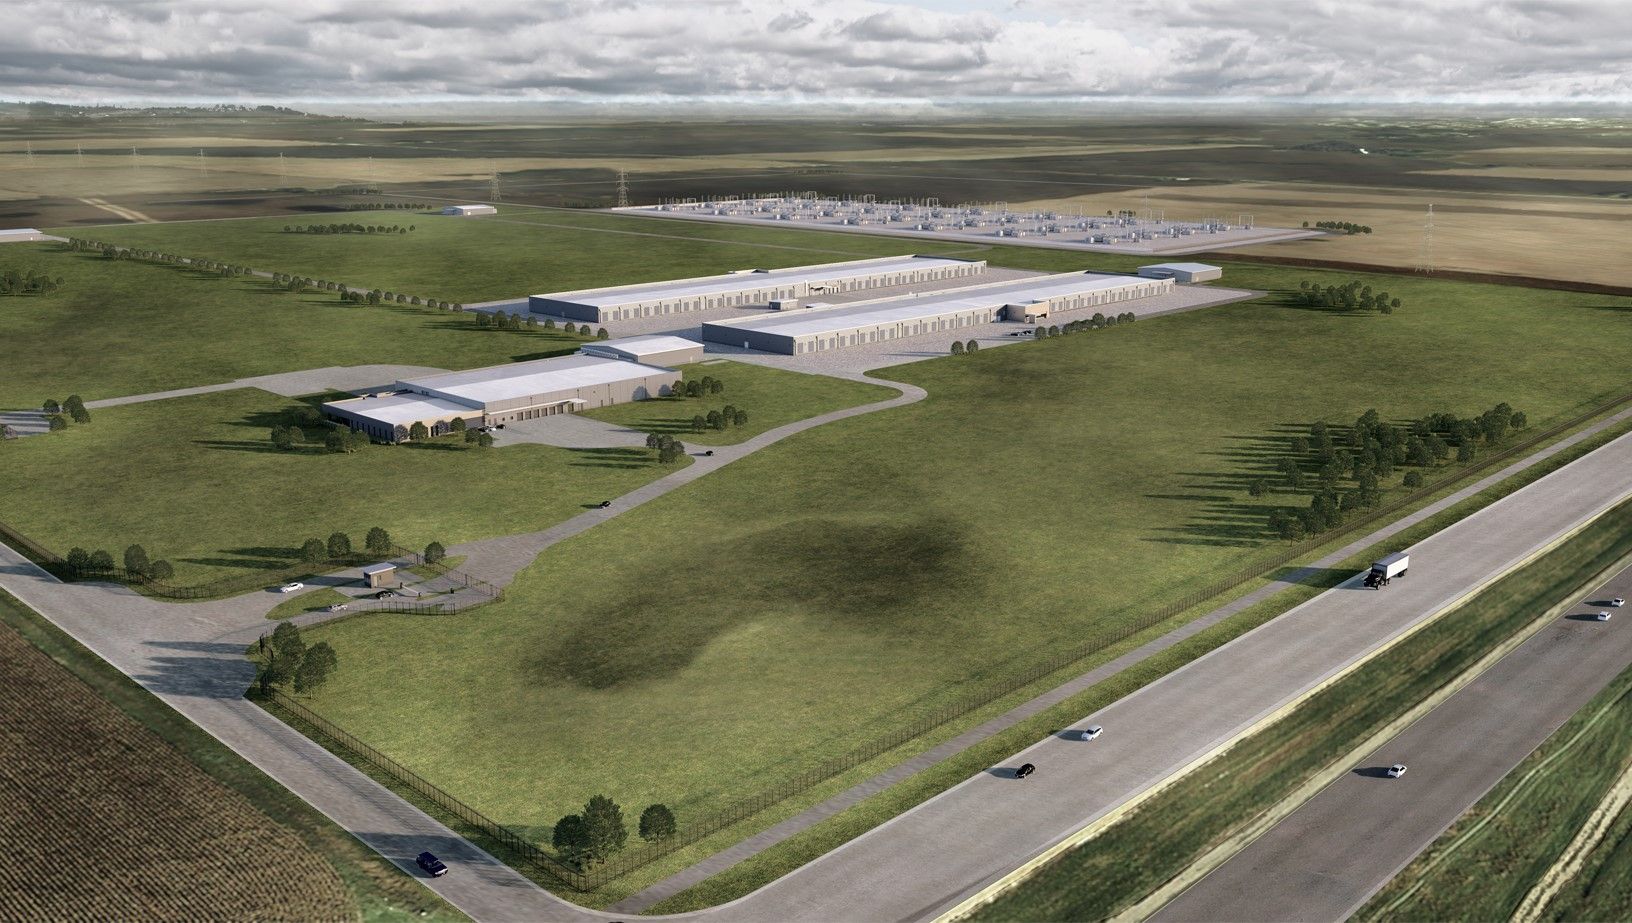 Apple to build data center in Iowa with completely renewable energy